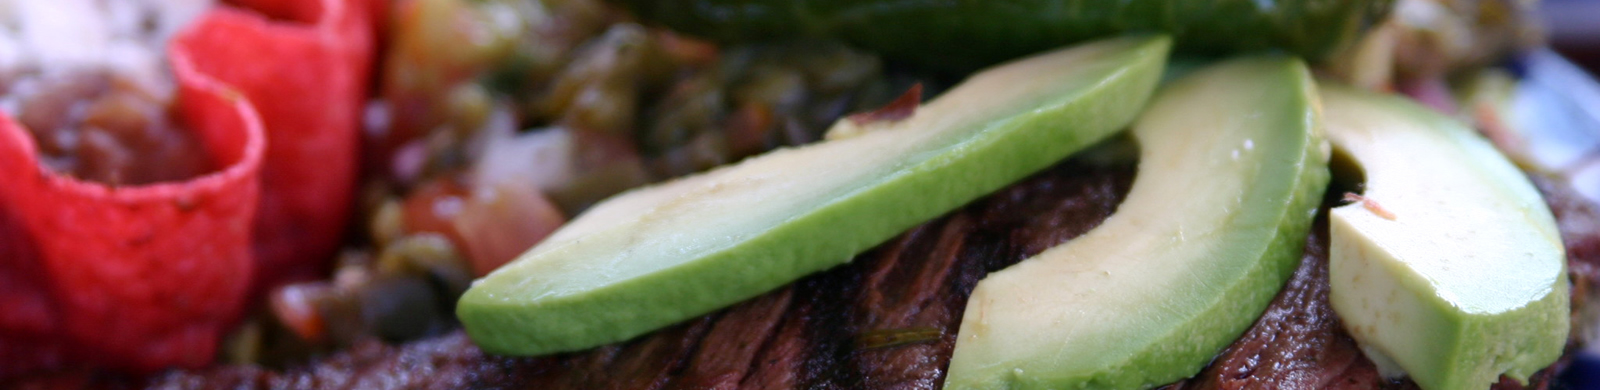 Steak and Avocado